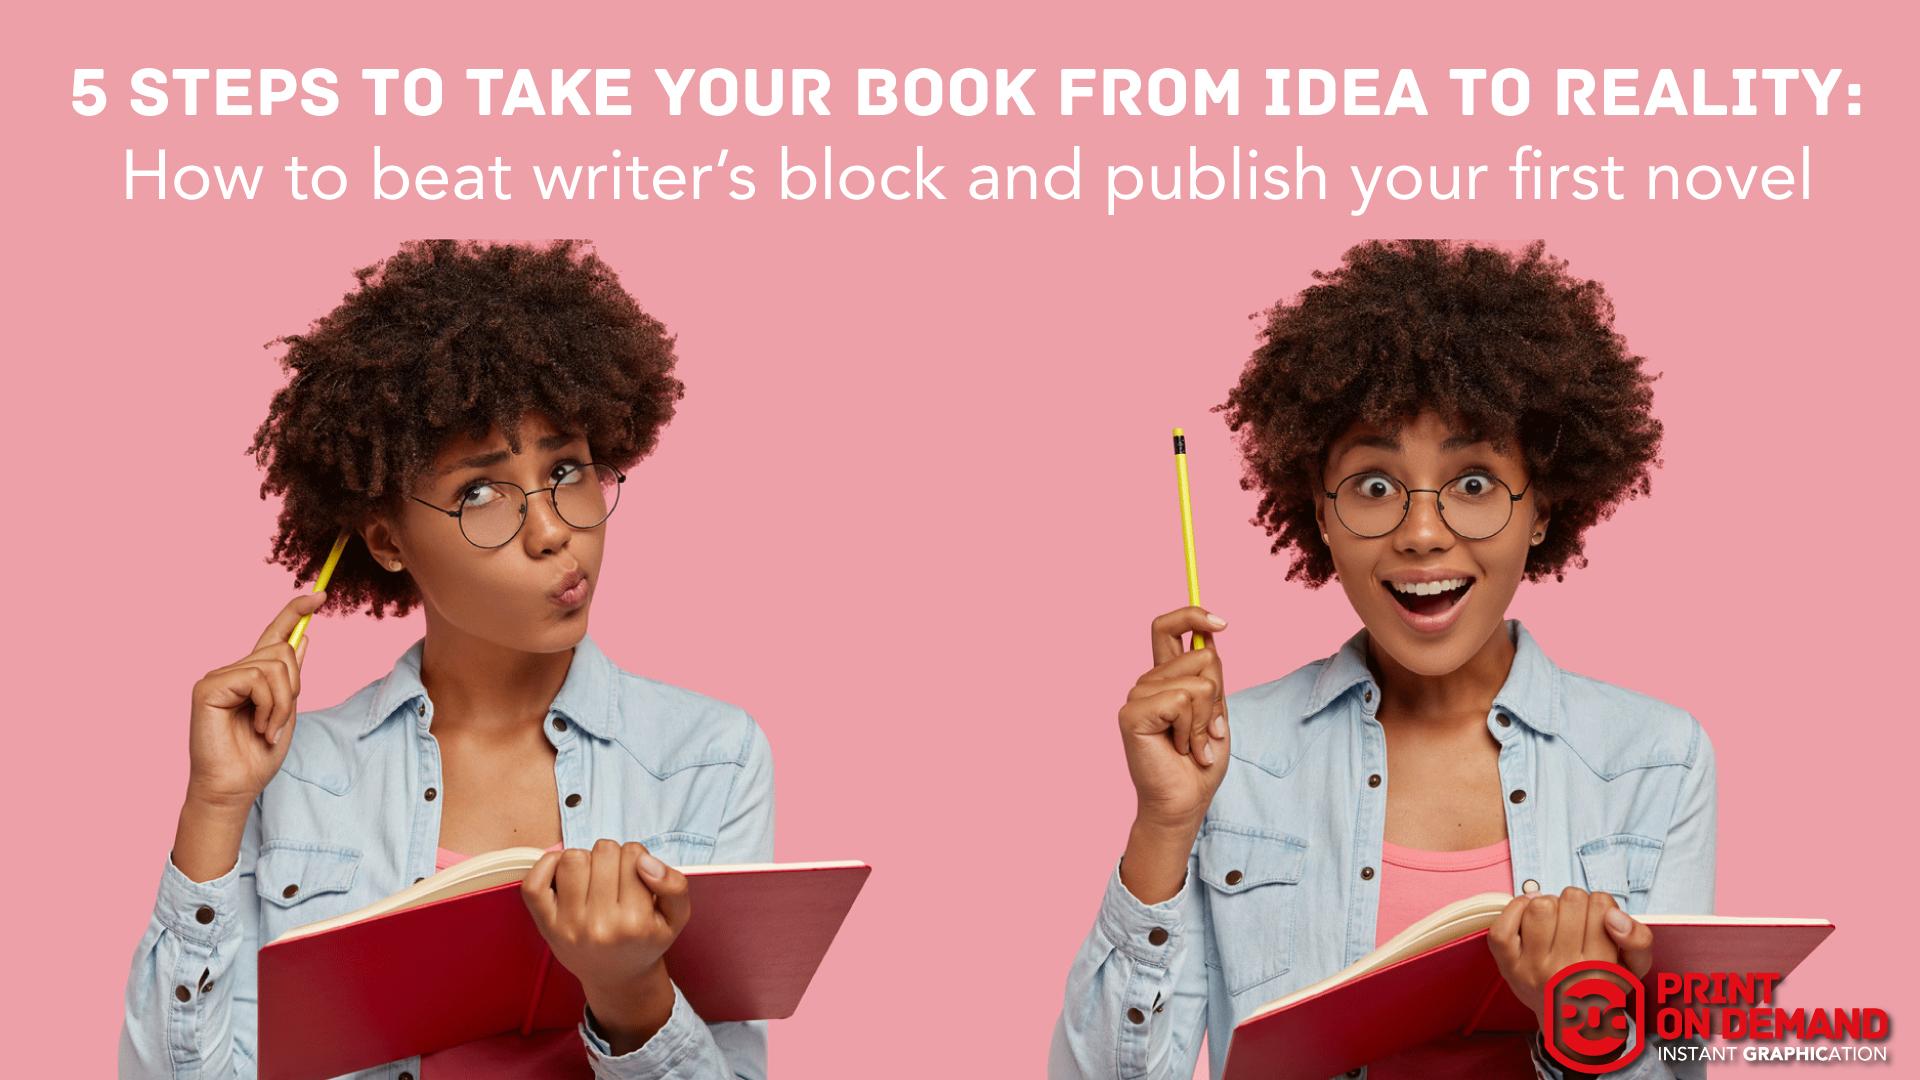 5 Steps to take your book from idea to reality